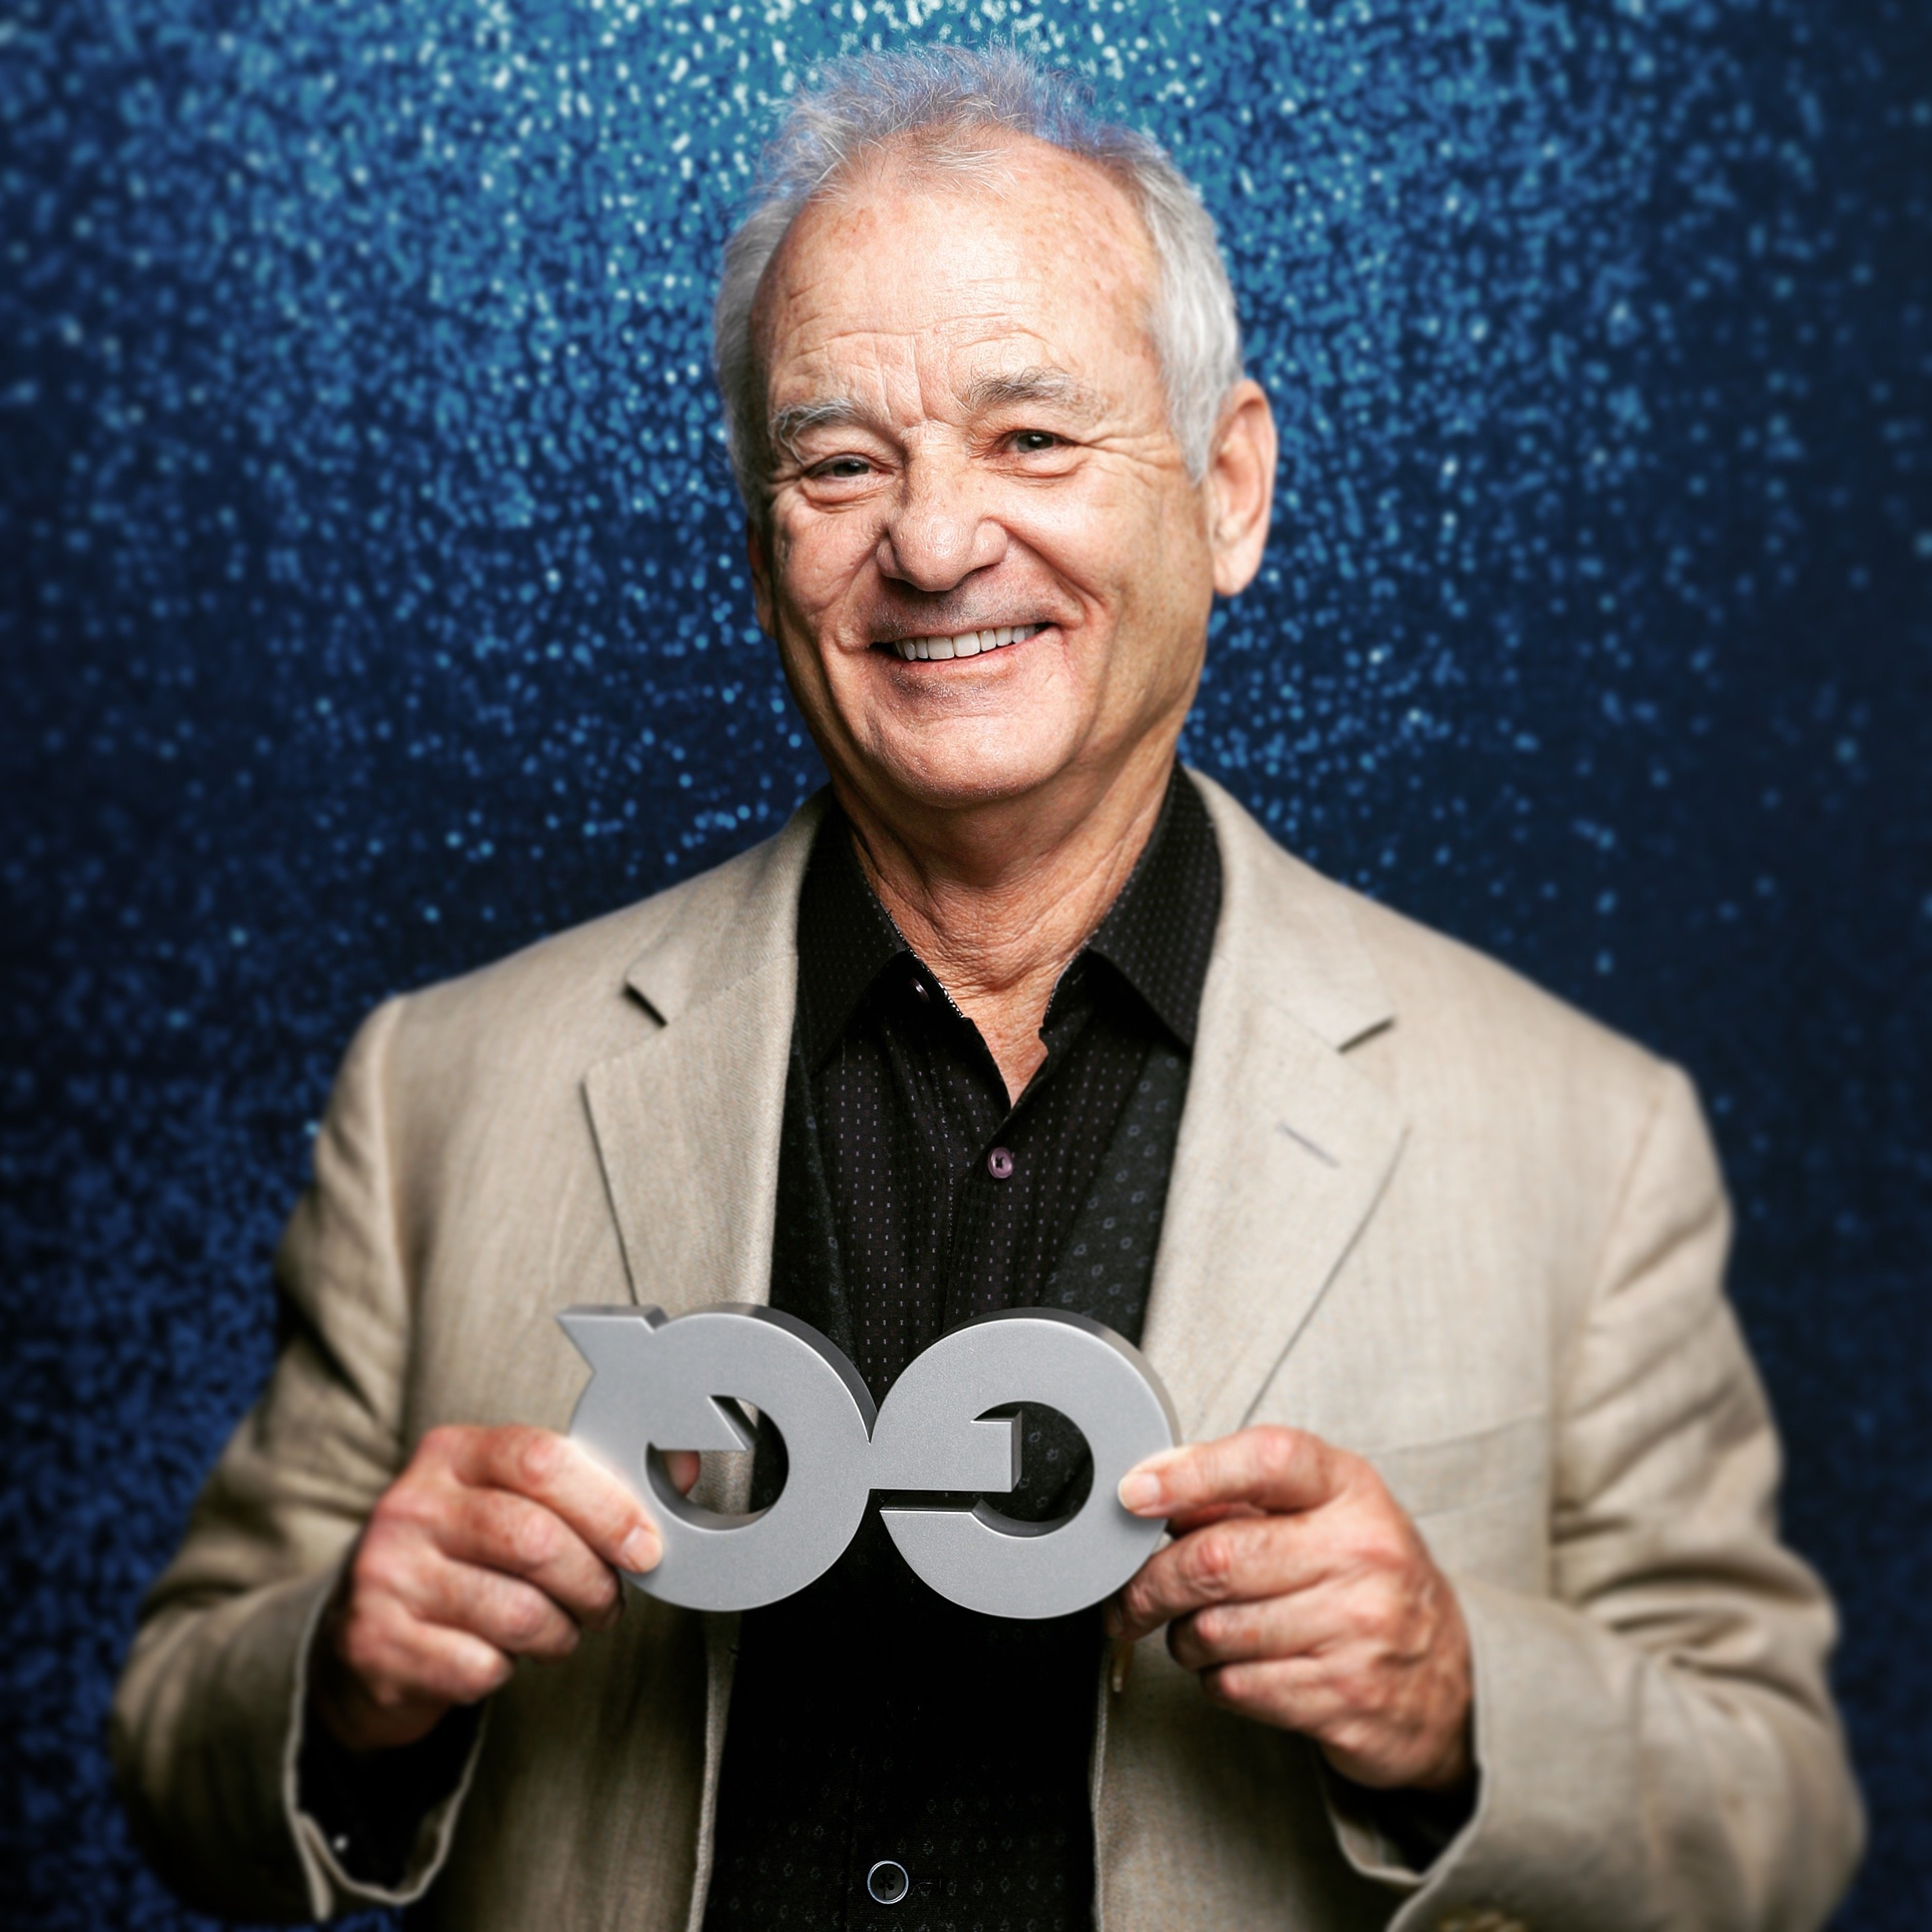 Bill Murray poses at the GQ Men of the Year Awards in Berlin, Germany on November 10, 2016   Photo: Getty Images